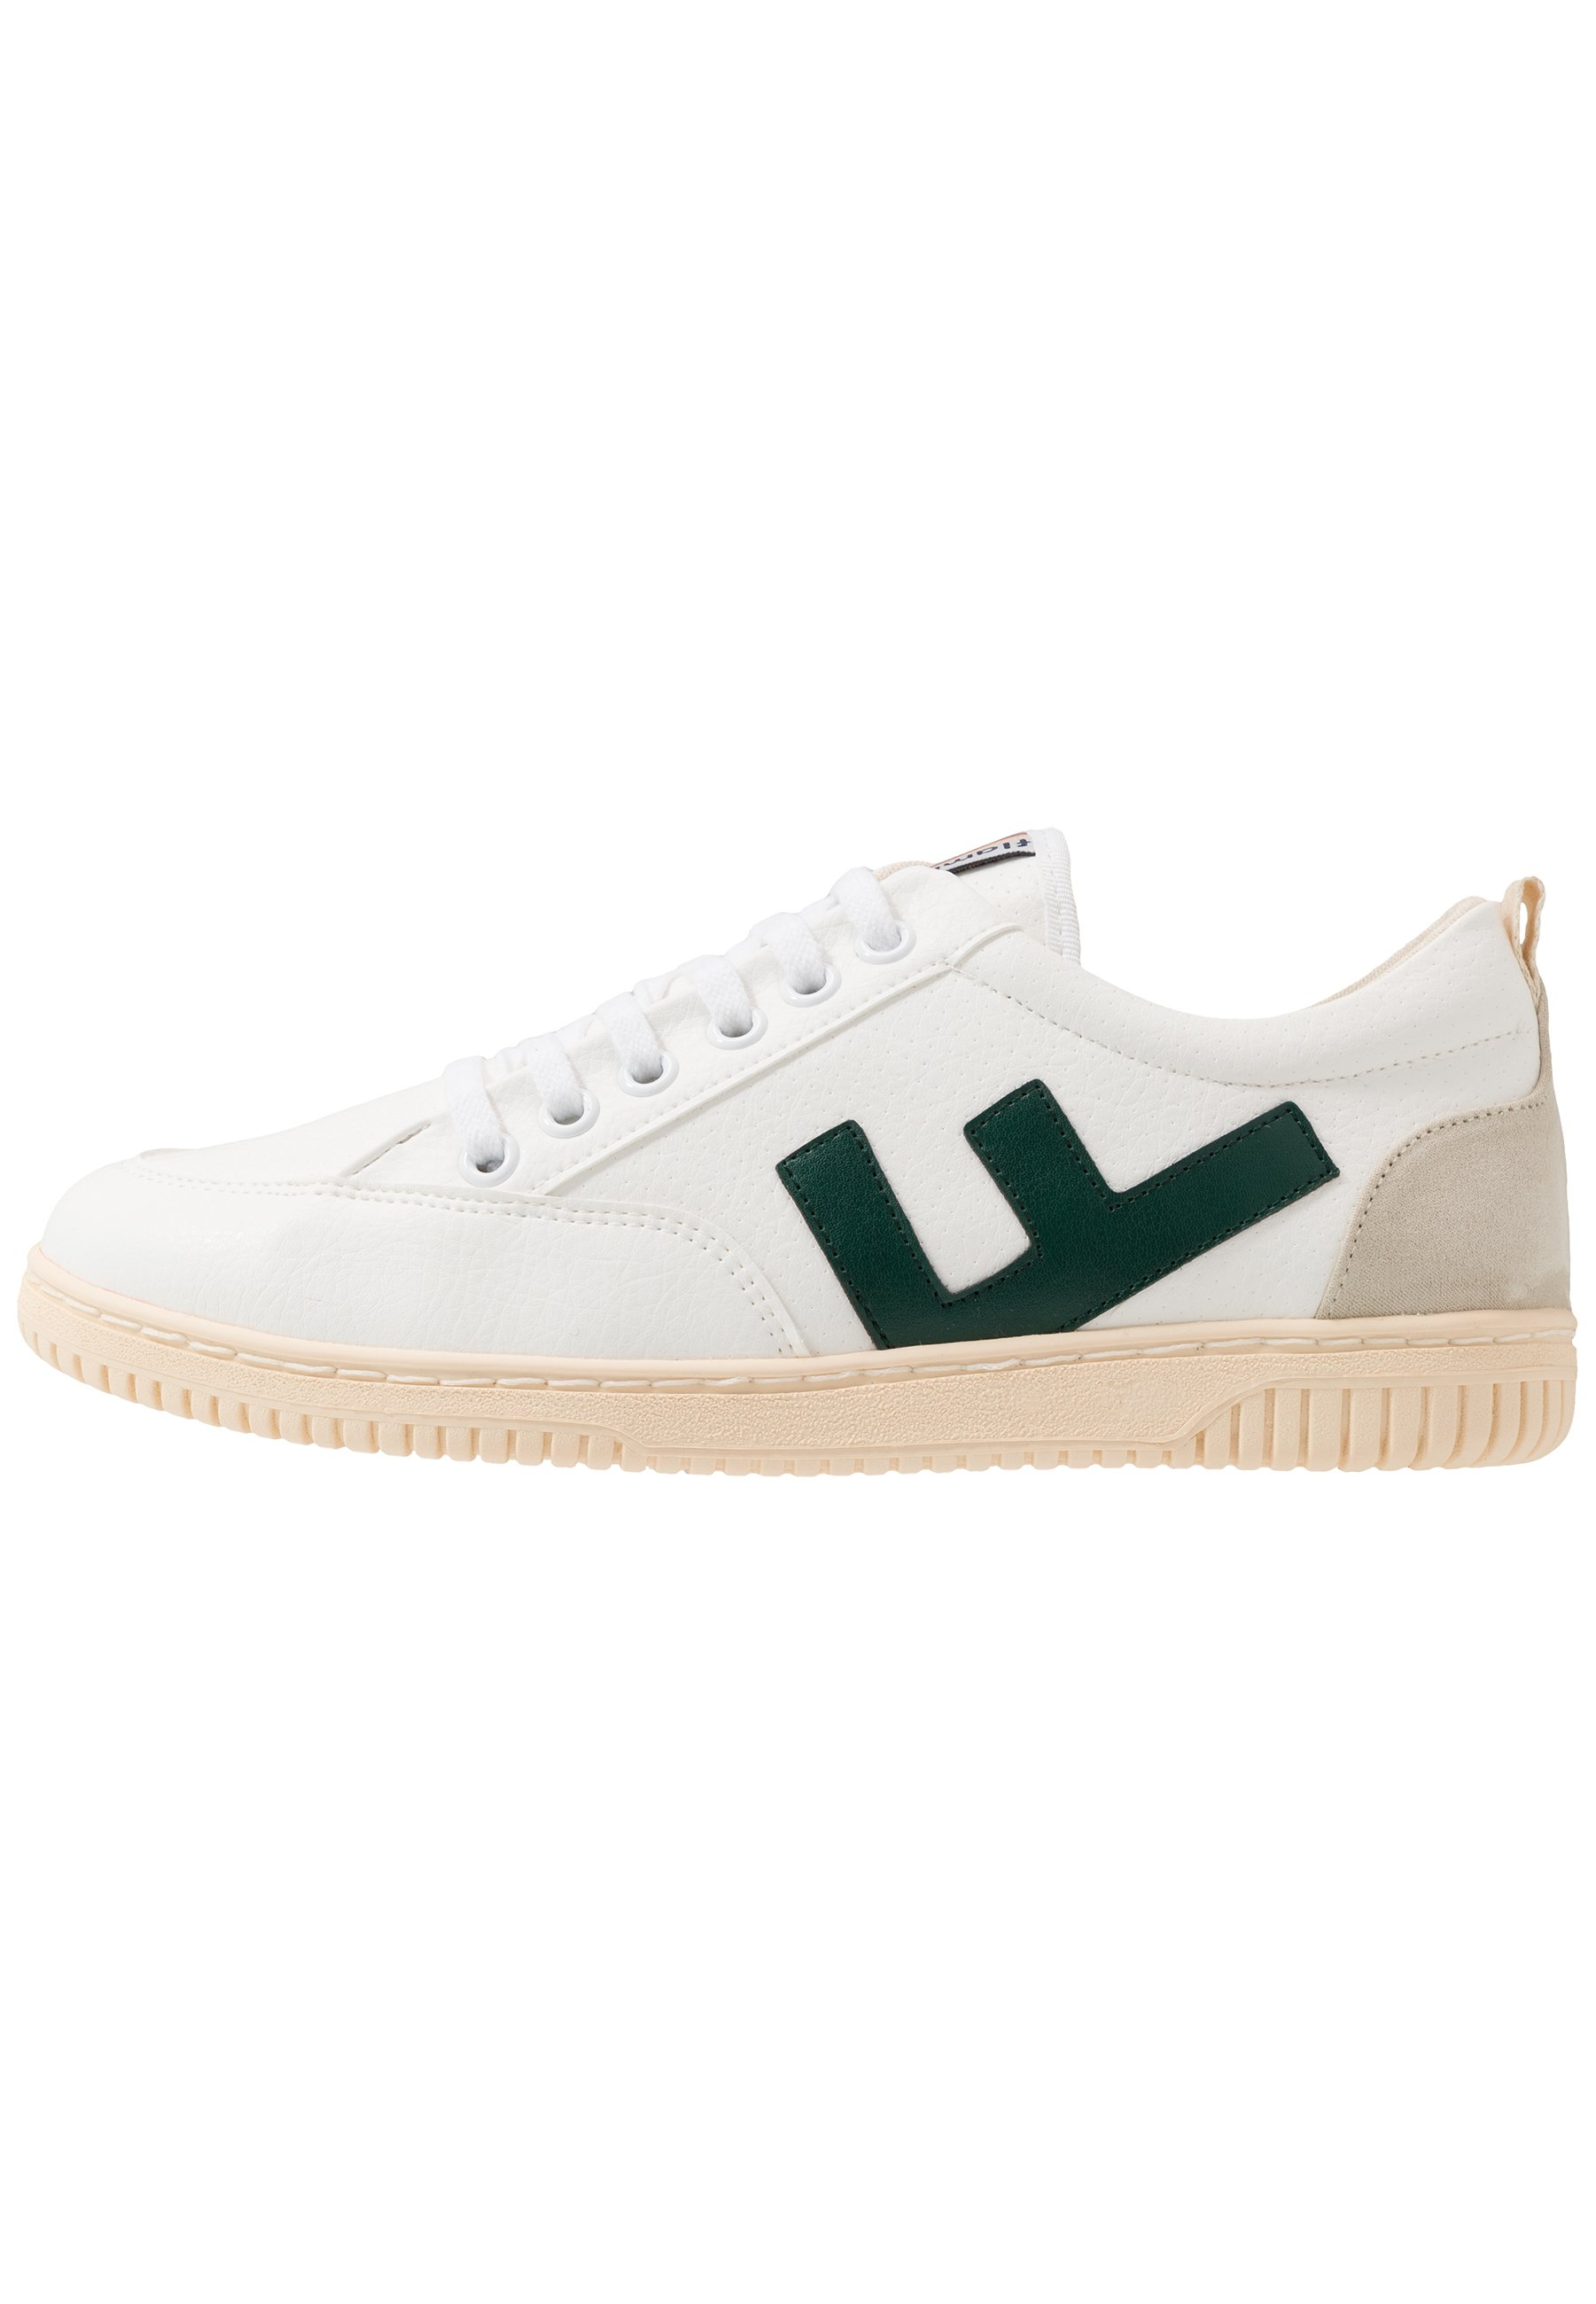 Flamingos' Life Roland - Sneakers Green/ivory